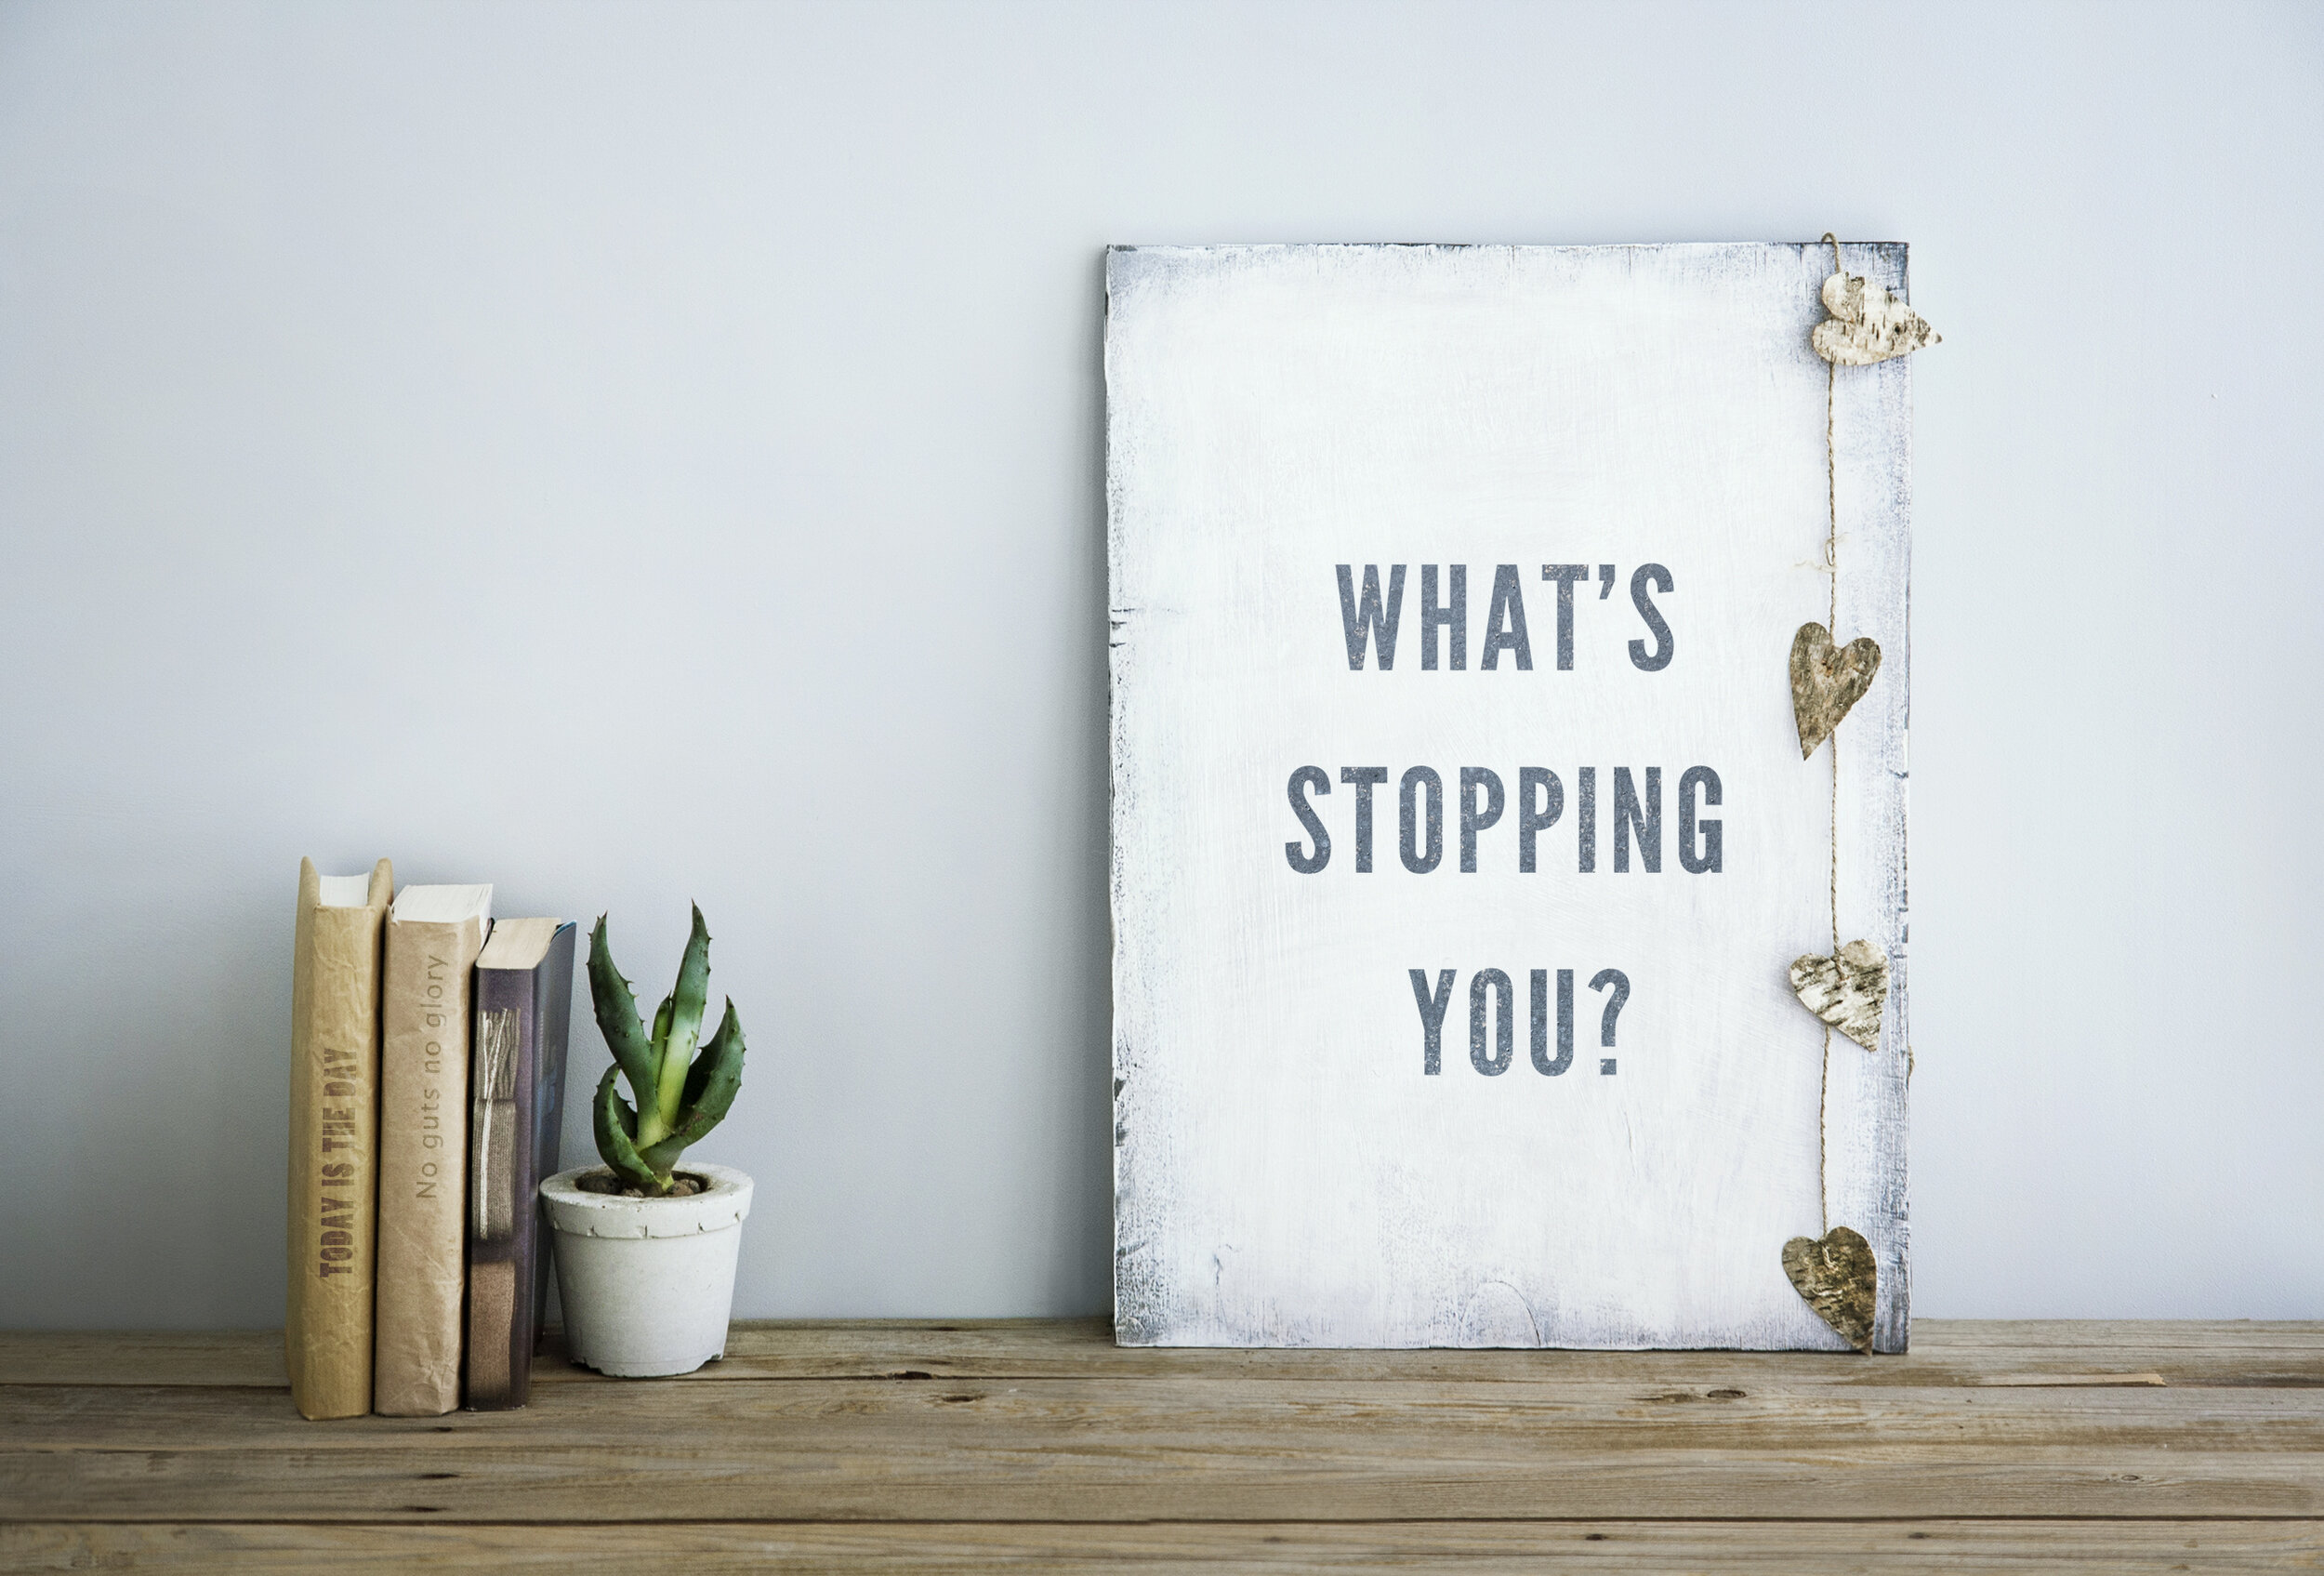 What's stopping you.jpeg